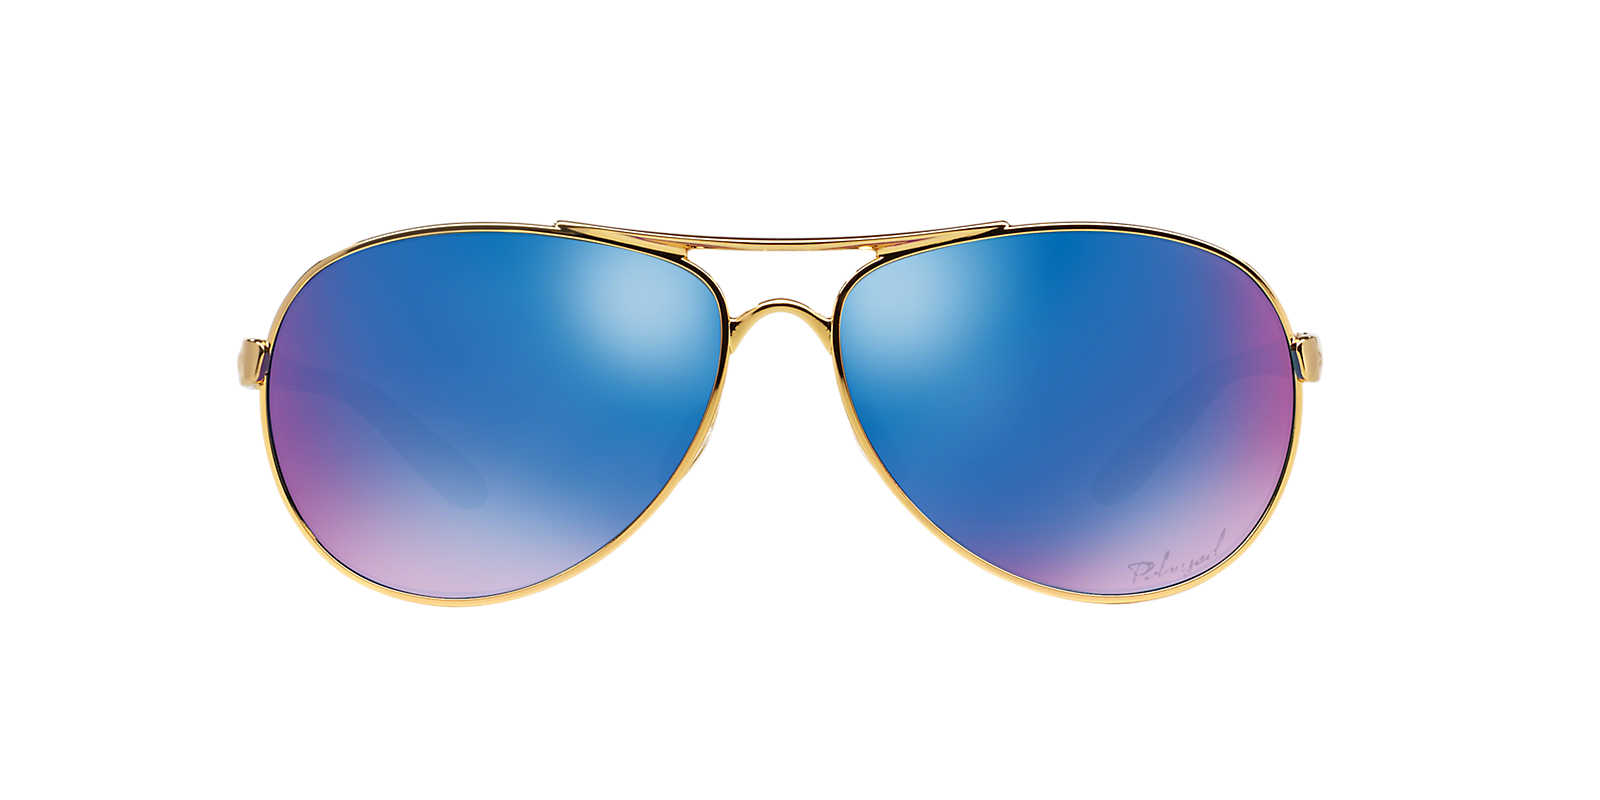 oakley blue sunglasses  Oakley Sunglasses - Designer Sunglasses